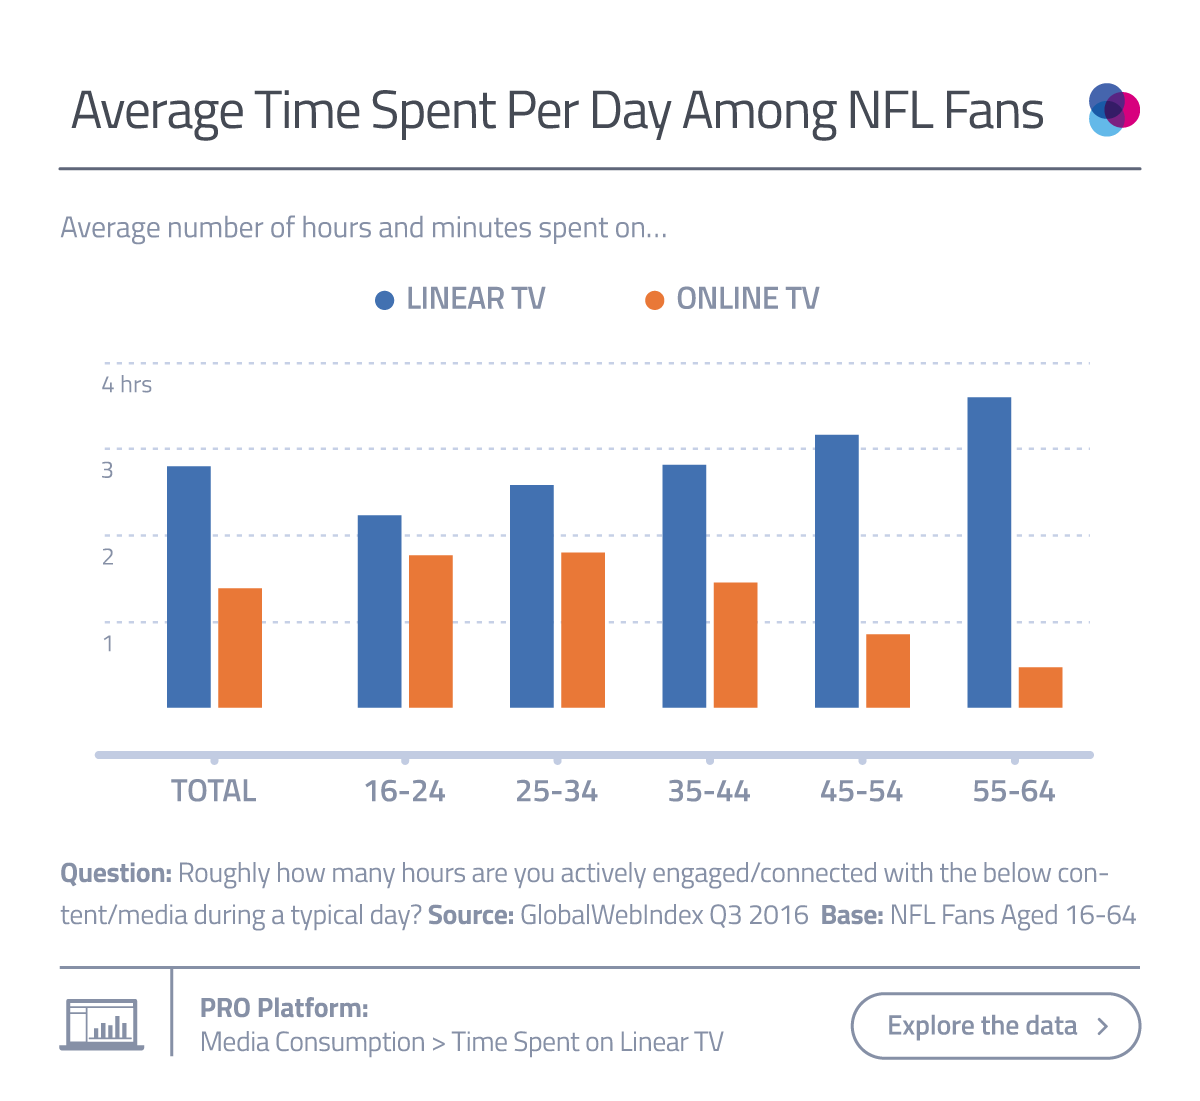 Average Time Spent Per Day Among NFL Fans